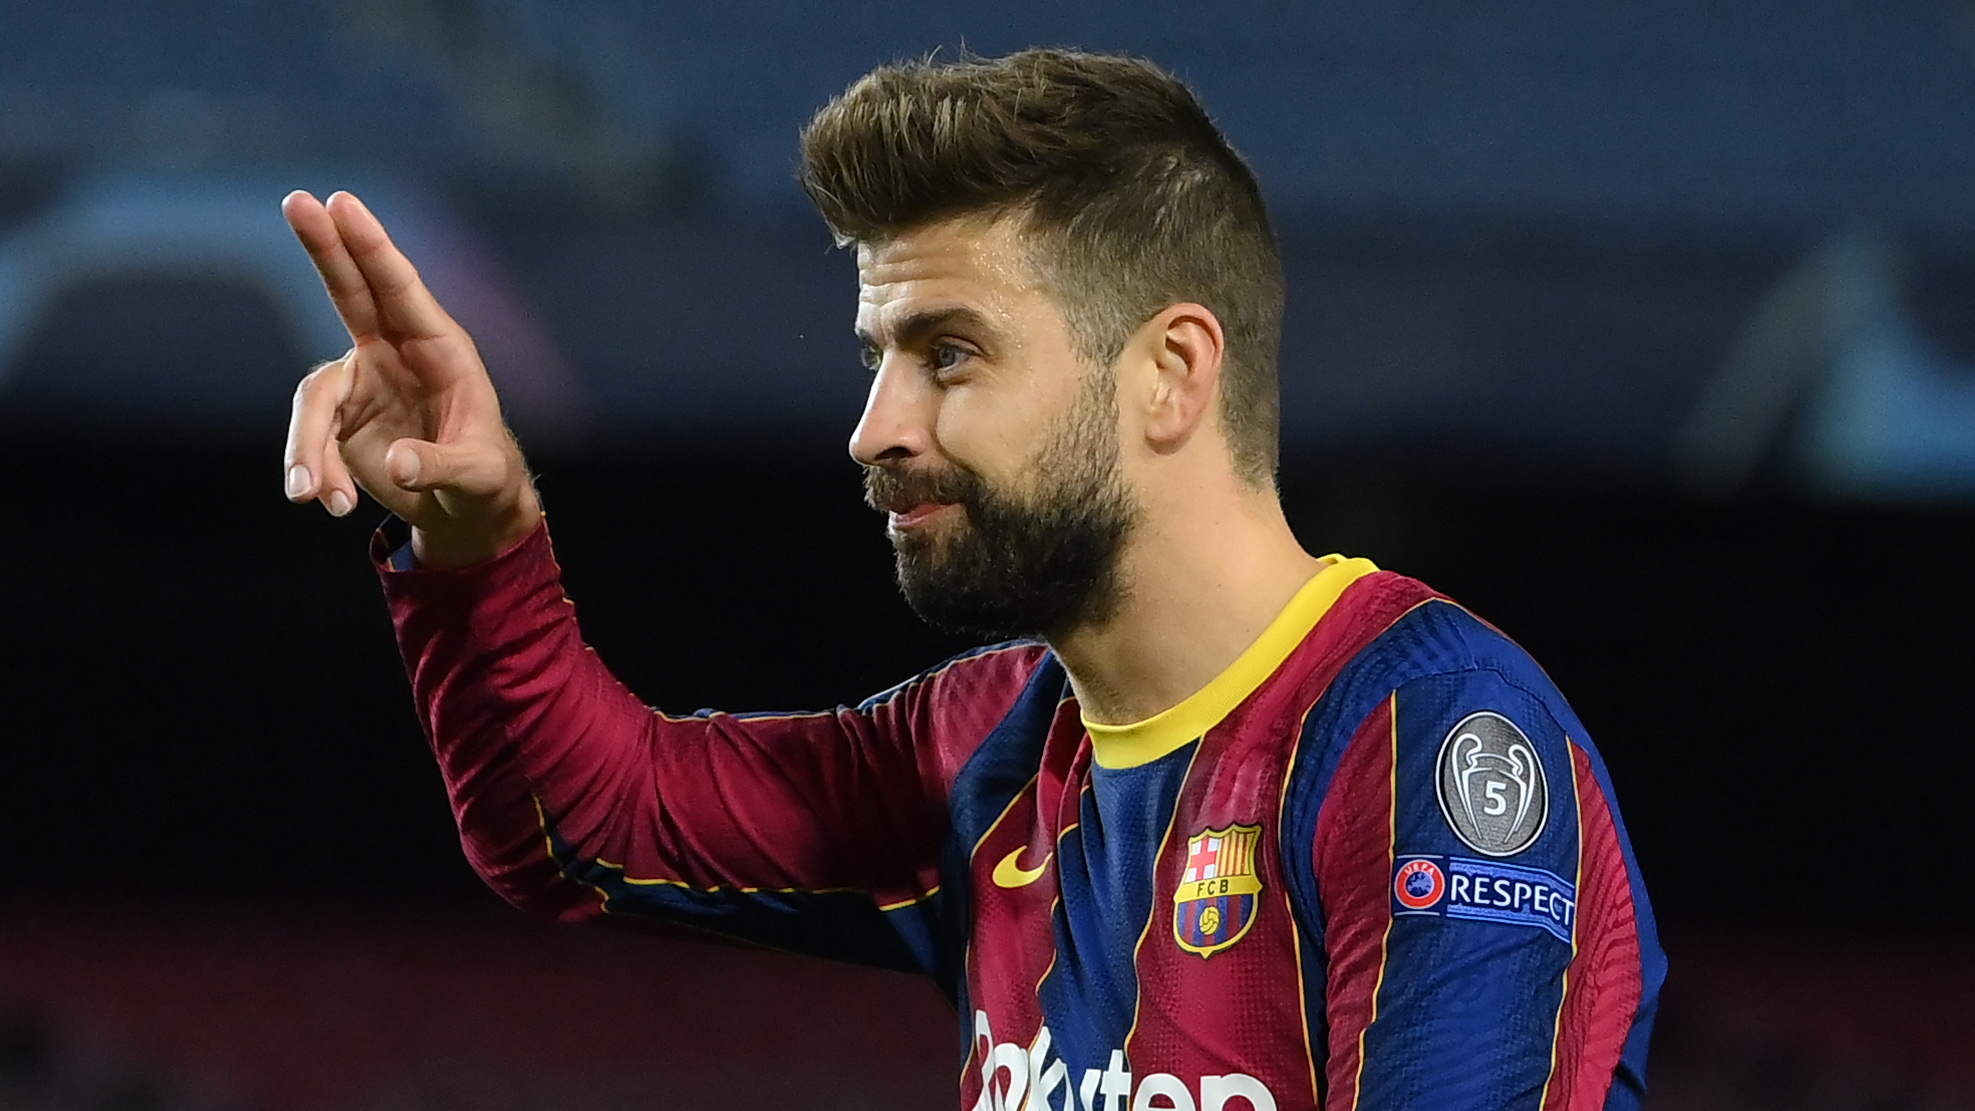 'We have to win, there's no other option' – Pique says Barcelona have only one path to La Liga title | Goal.com